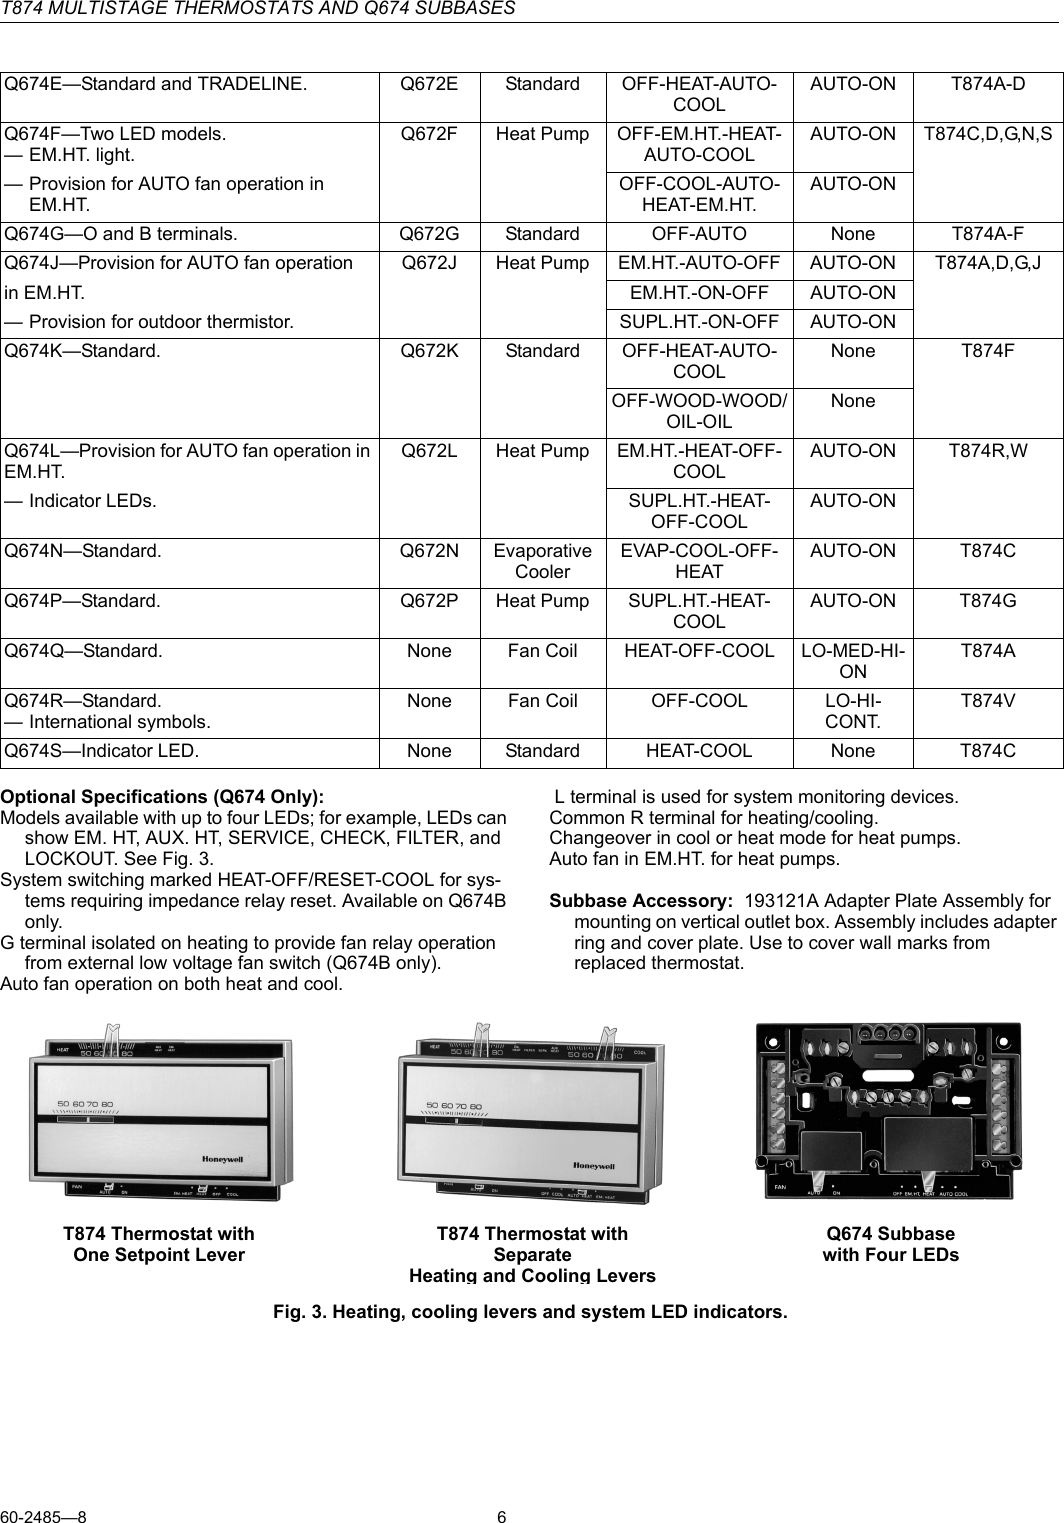 Honeywell T874 Users Manual 60 2485 Multistage Thermostats And Q674